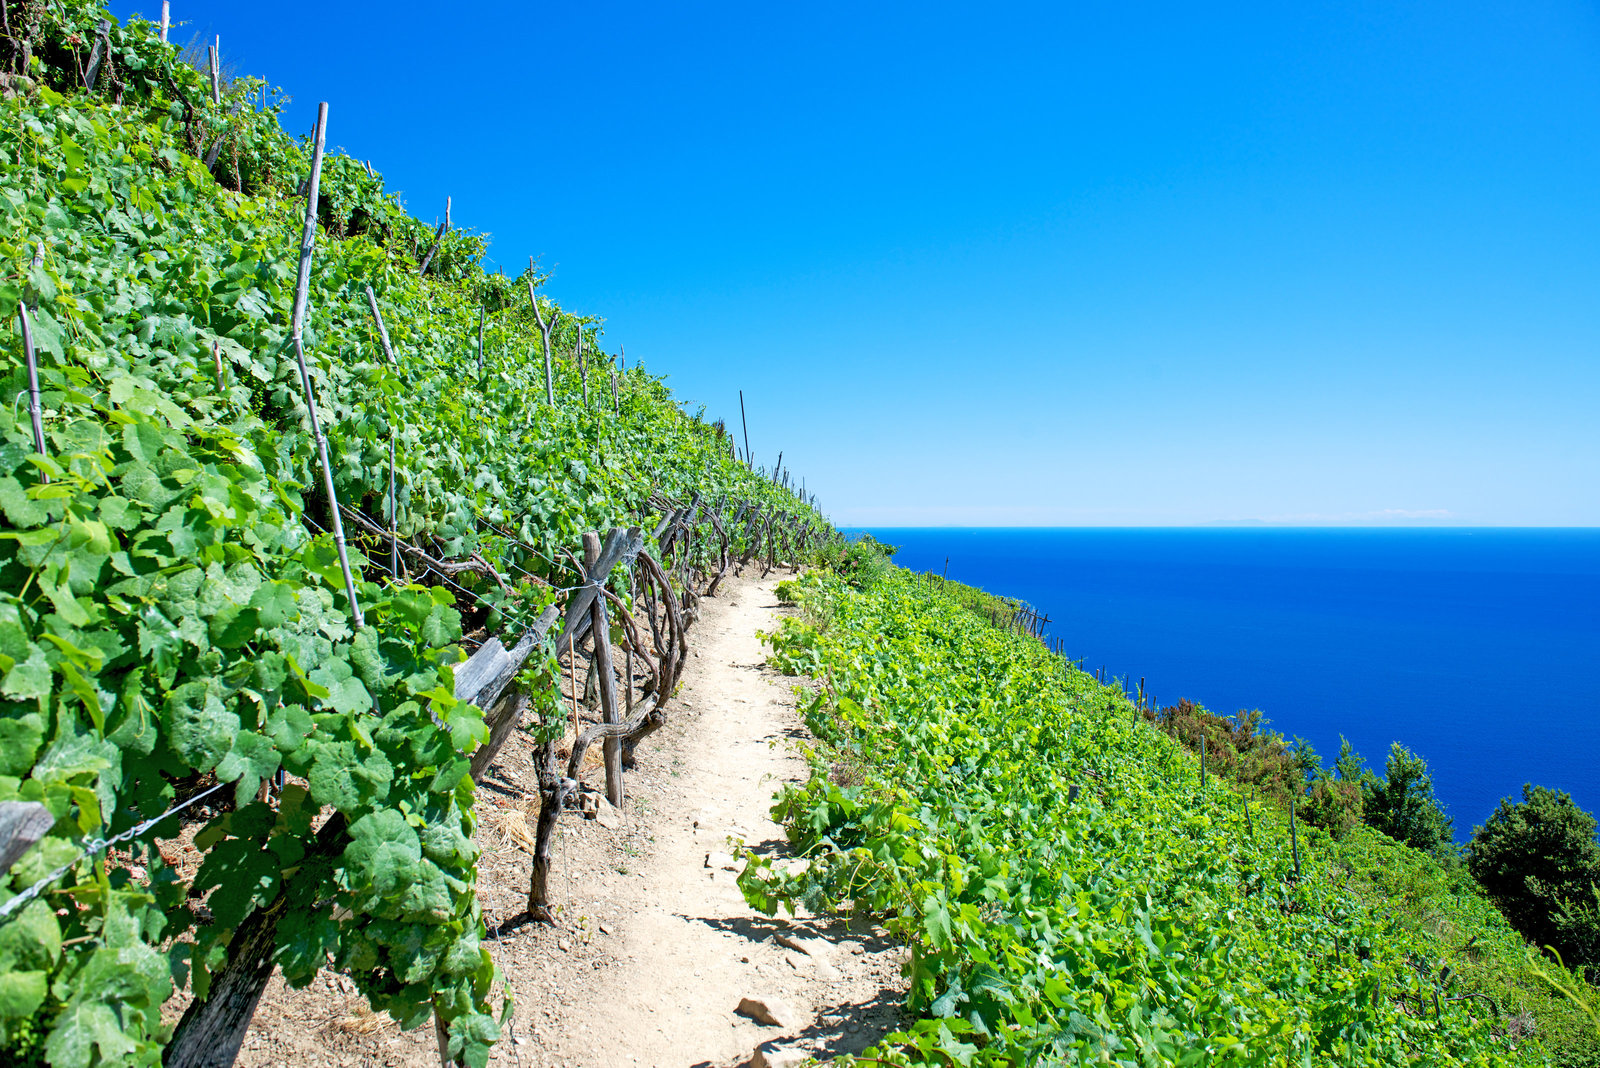 Vineyard on the Sea